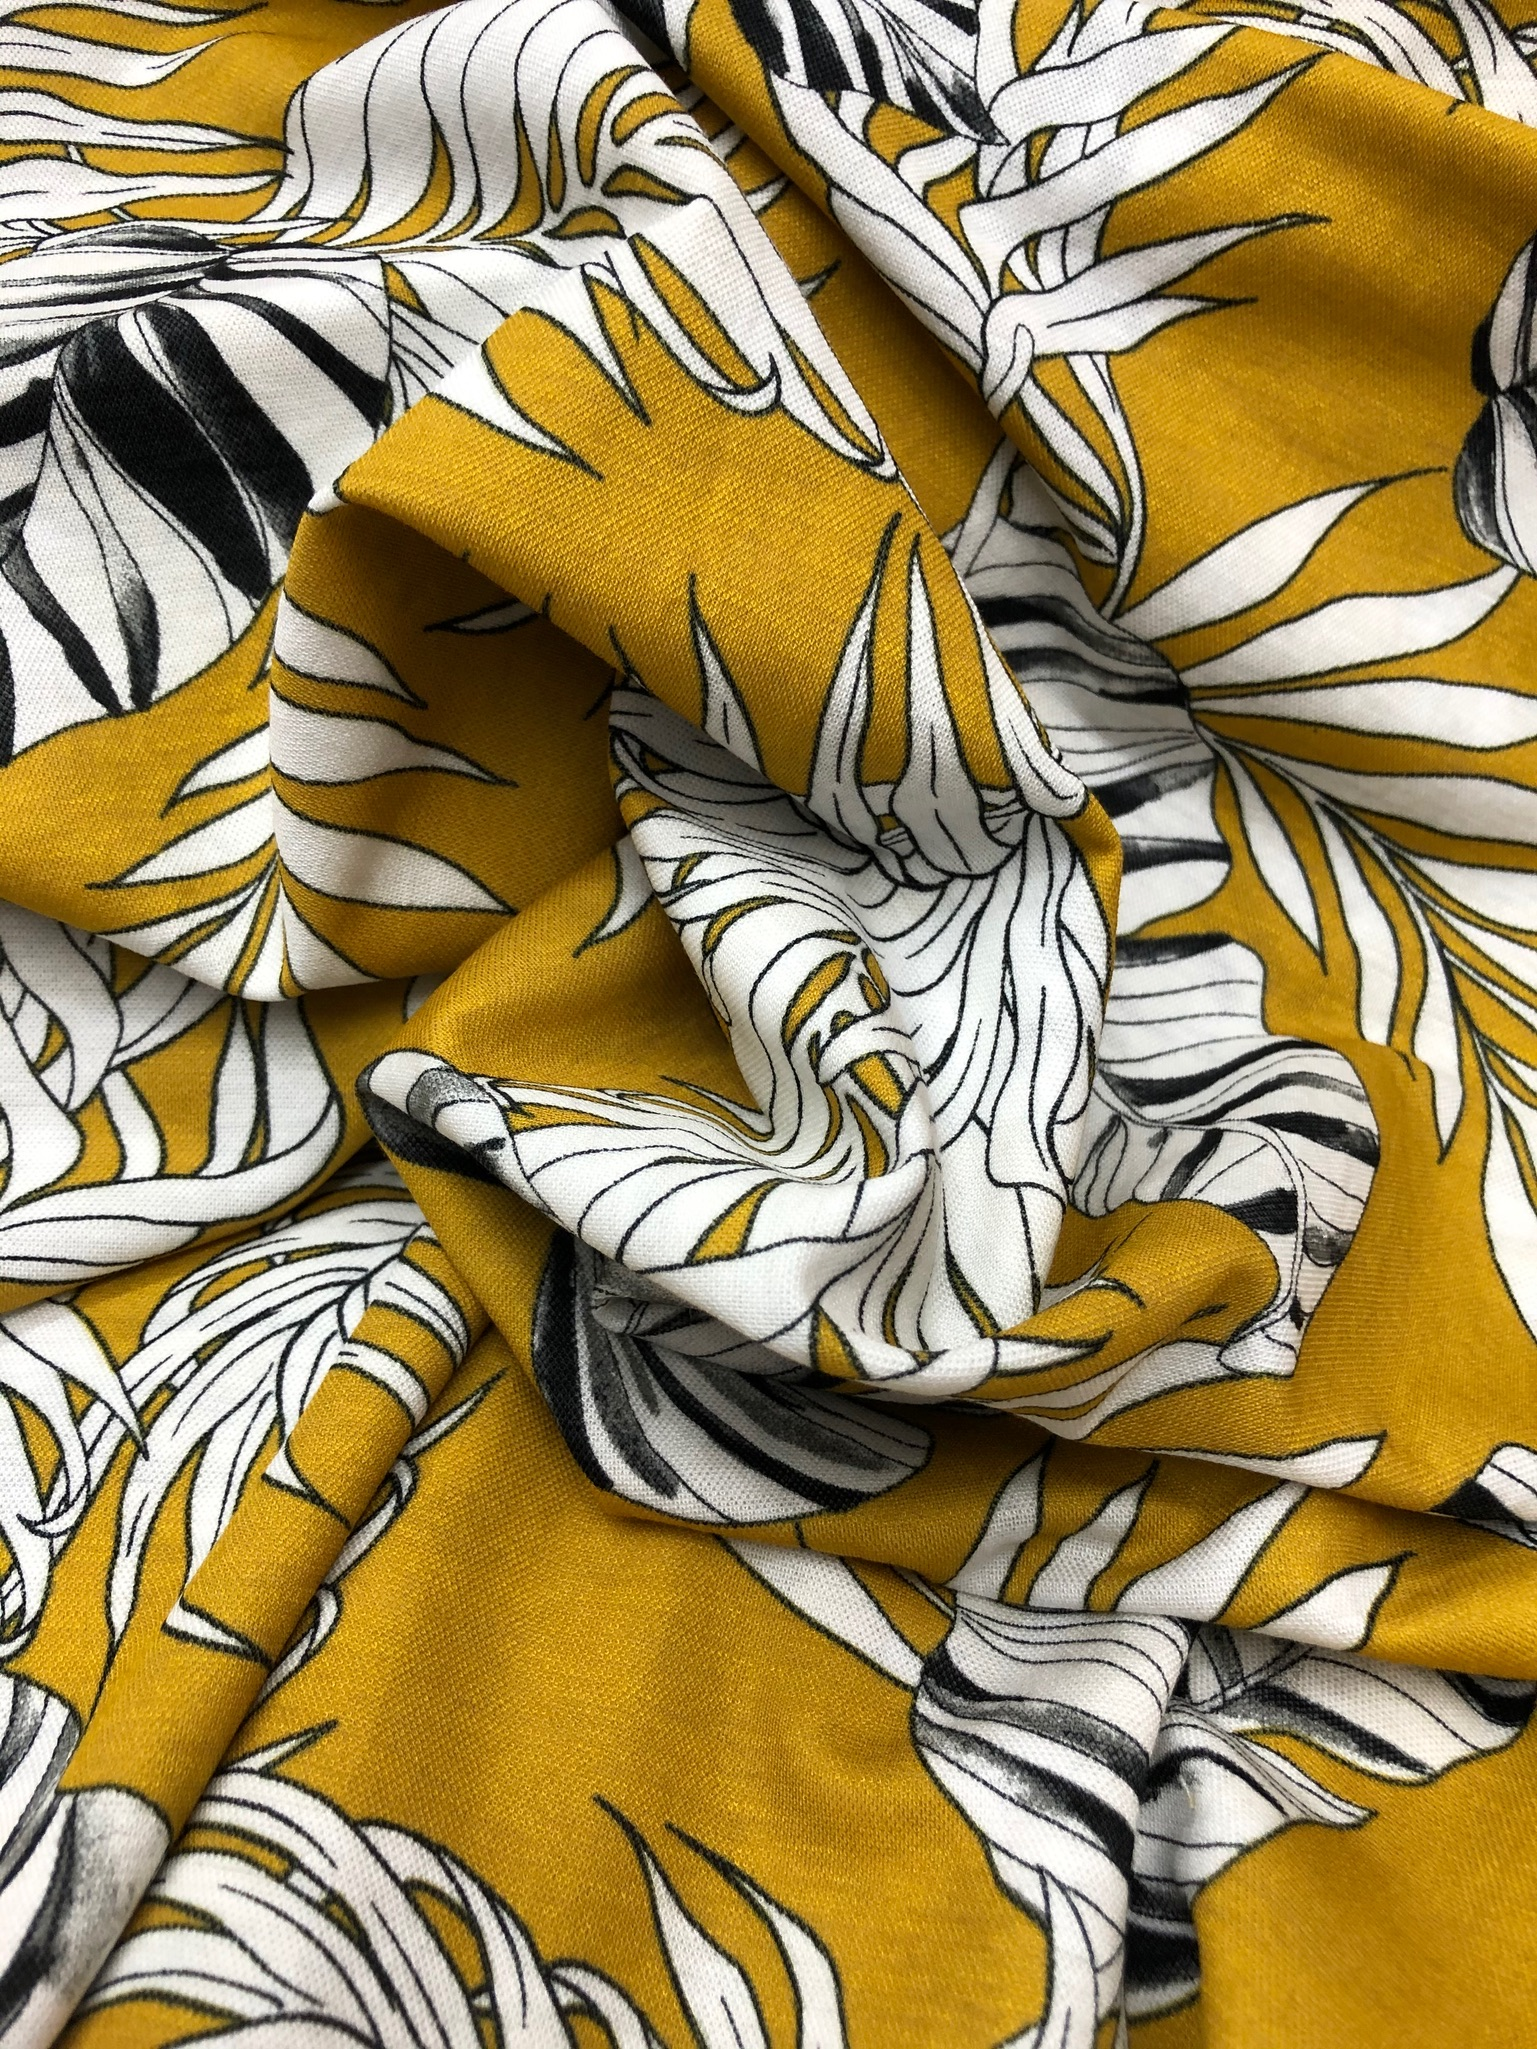 Palm Print on Ochre Jersey